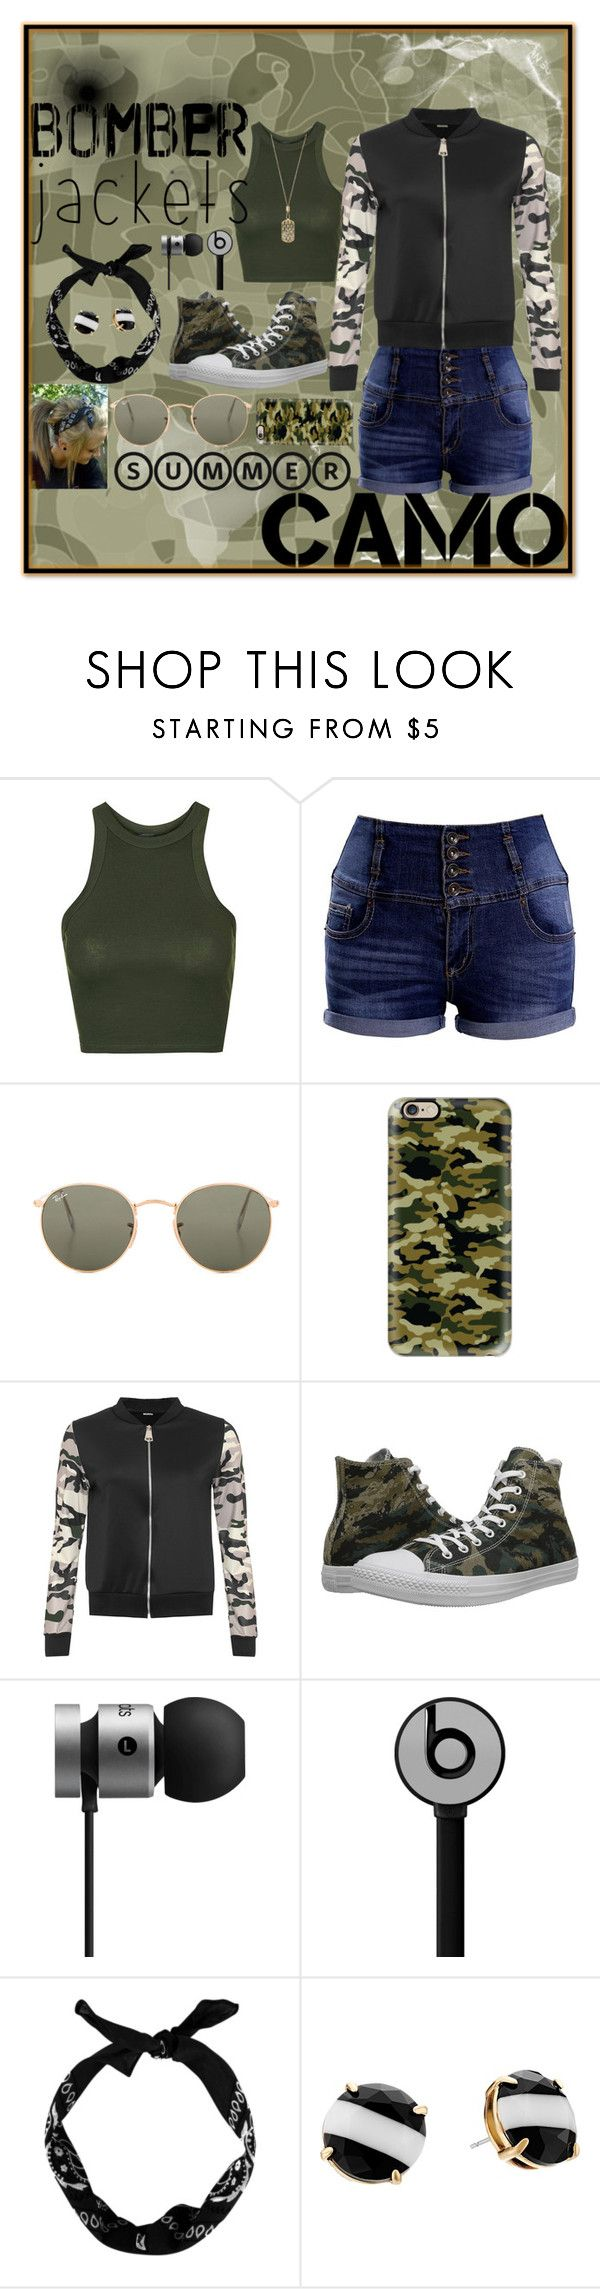 """Bomber Jacket (Camo)"" by ashieluvsyou ❤ liked on Polyvore featuring Topshop, Ray-Ban, Casetify, WearAll, Converse, Beats by Dr. Dre, New Look, Kate Spade, Michael Kors and bomberjackets"